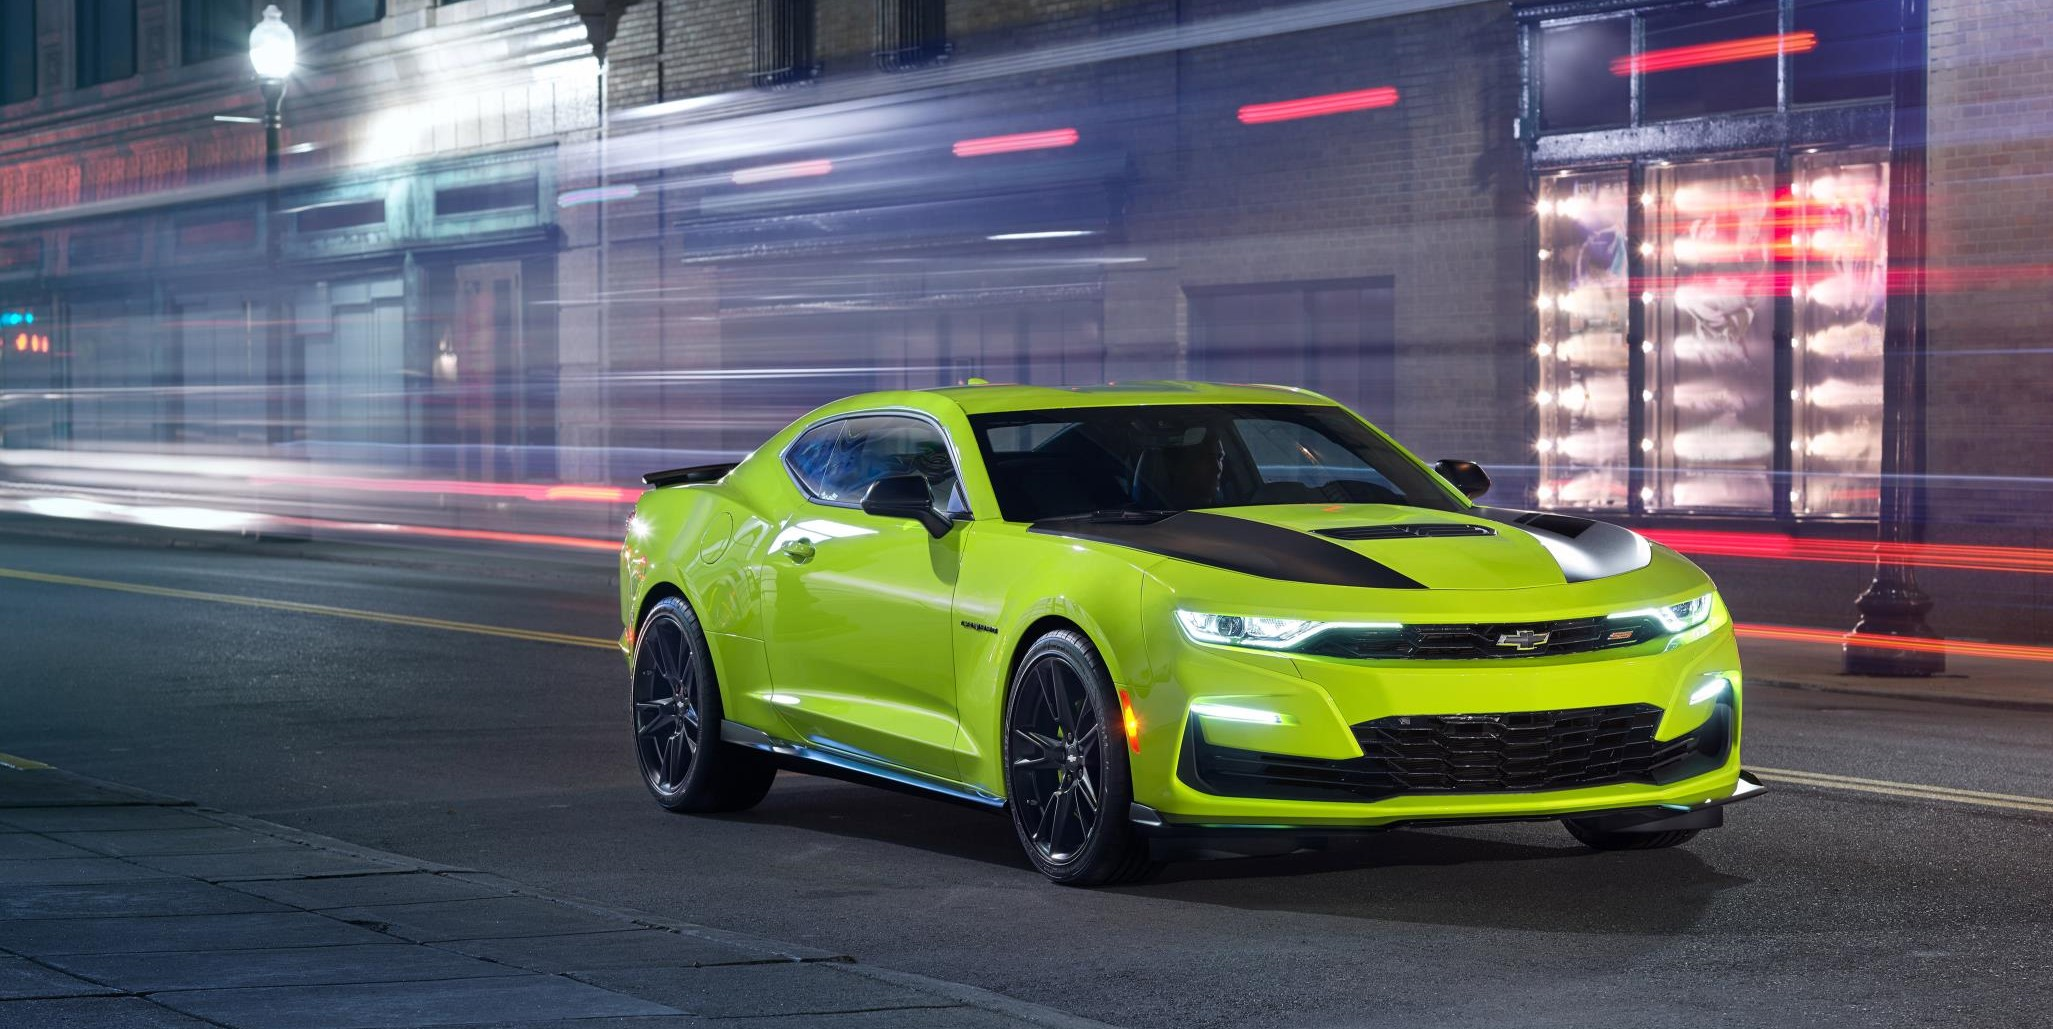 2019 CAMARO IS AWESOME IN SHOCK - myAutoWorld.com